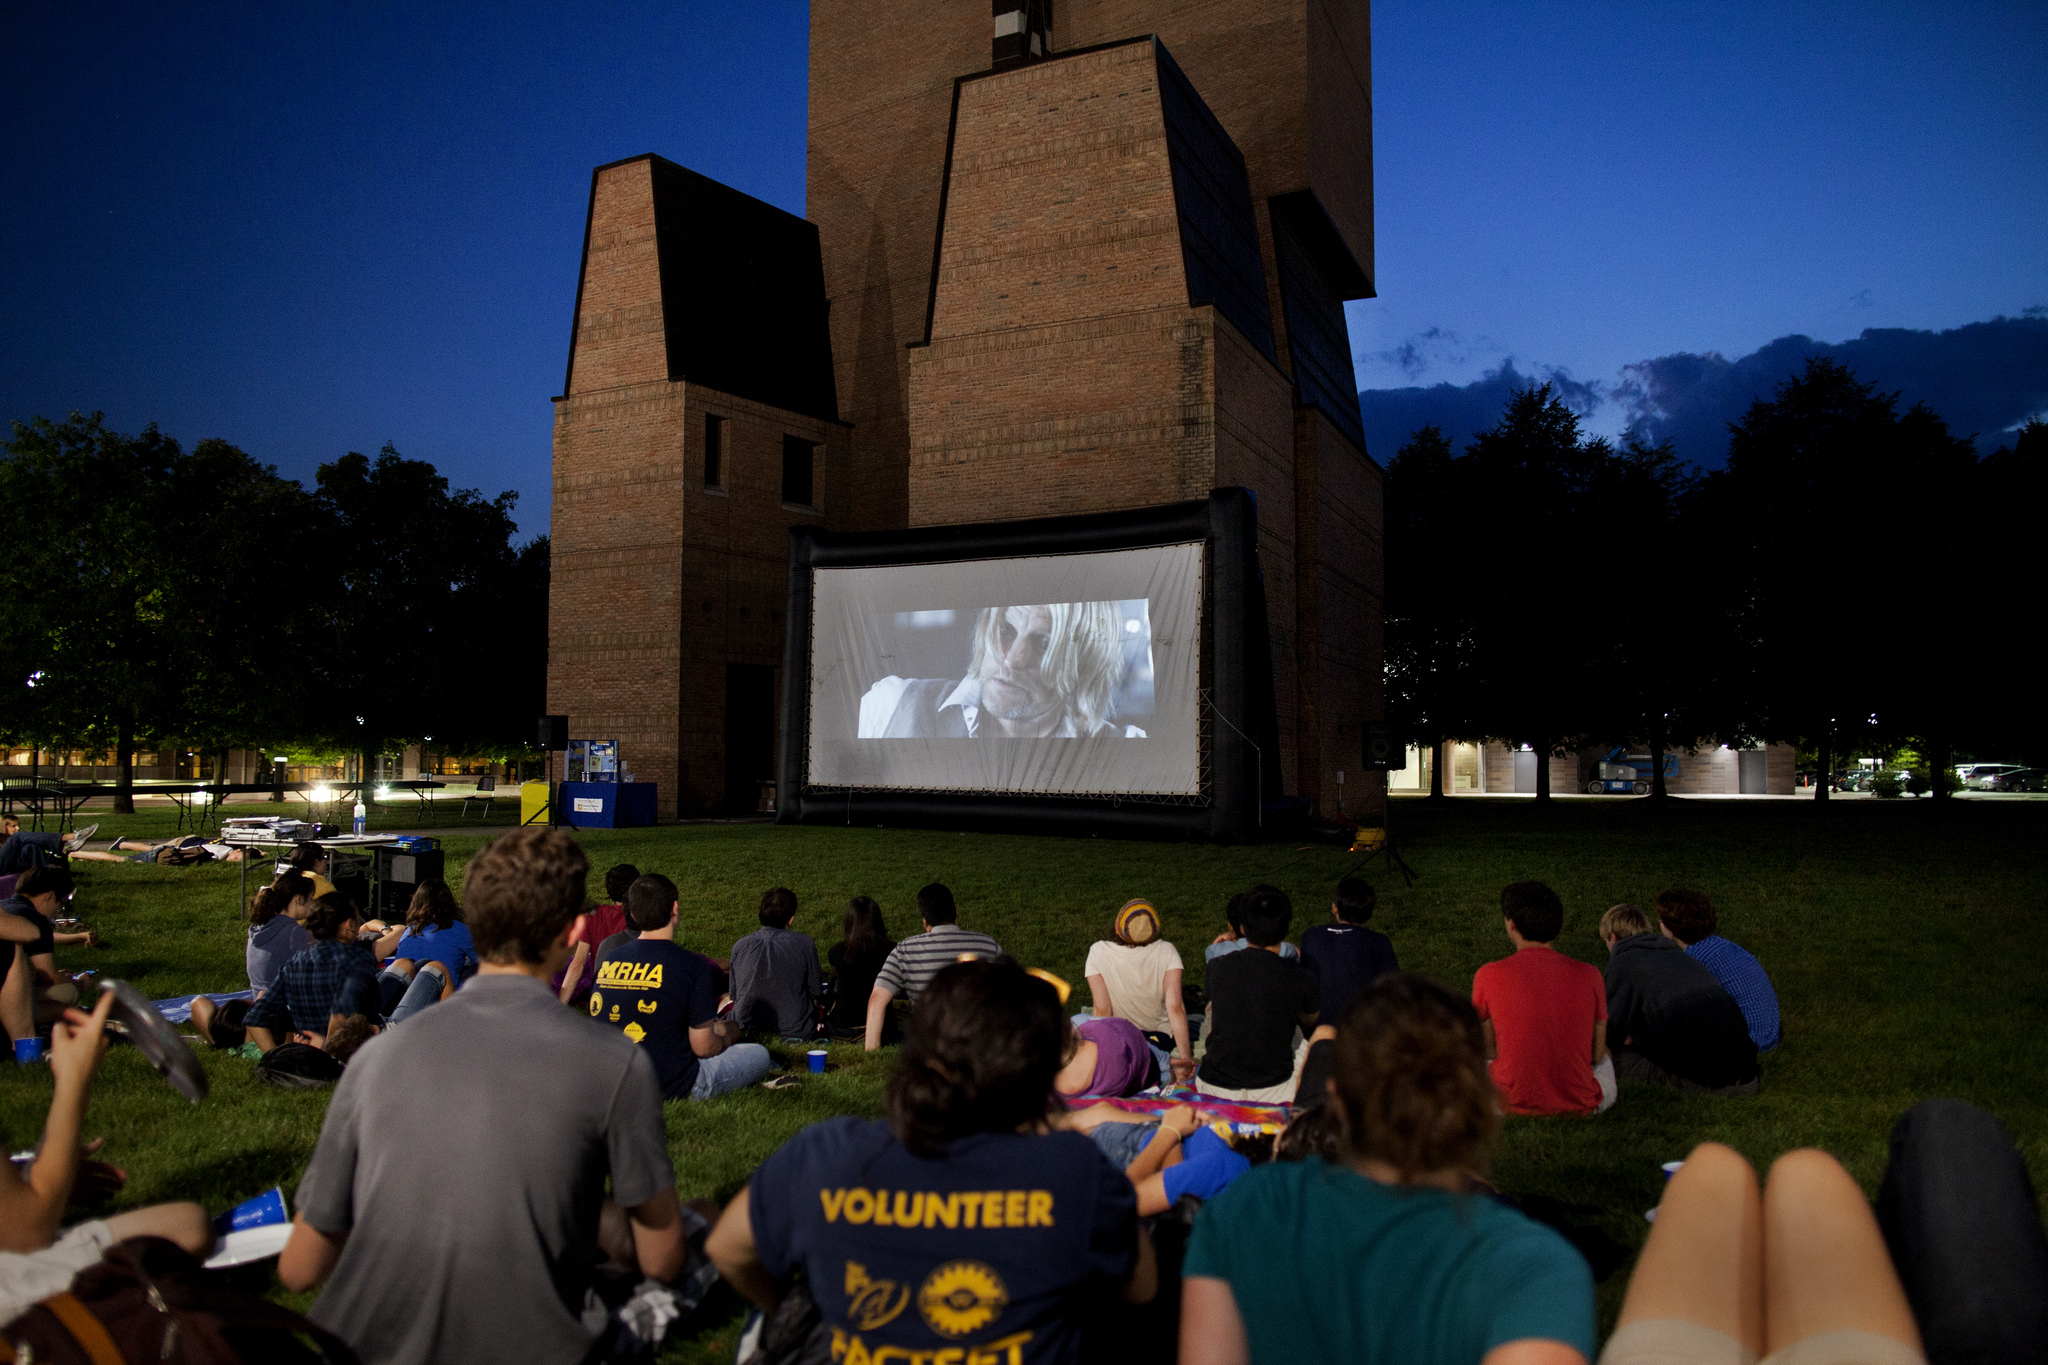 Movie on the diag